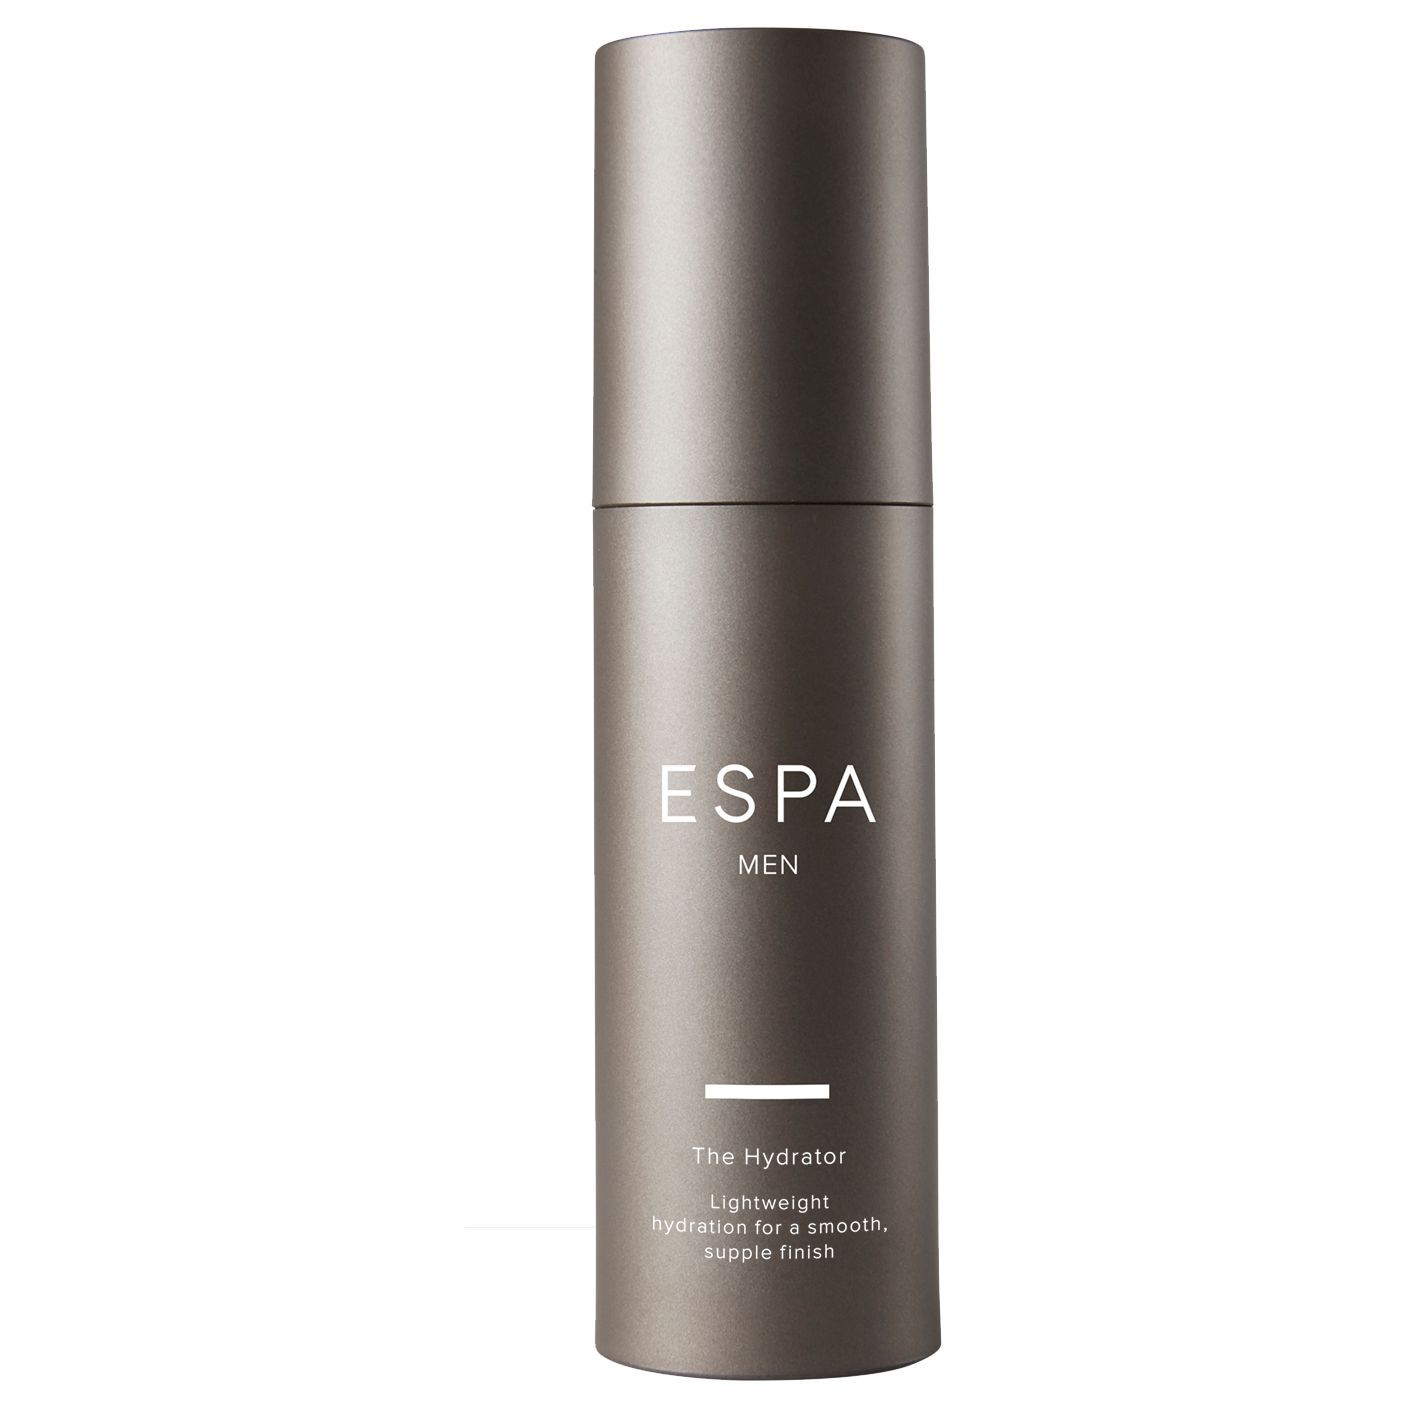 ESPA ESPA MEN The Hydrator, 35ml